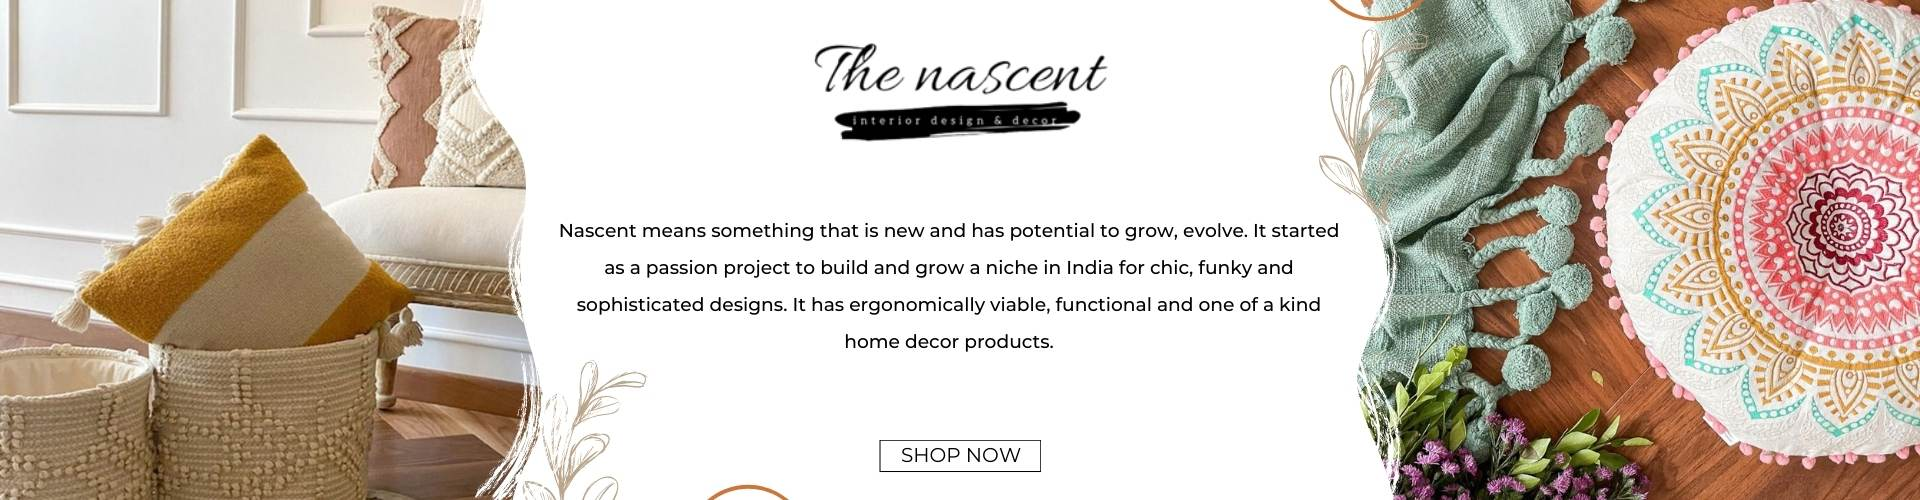 The Nascent